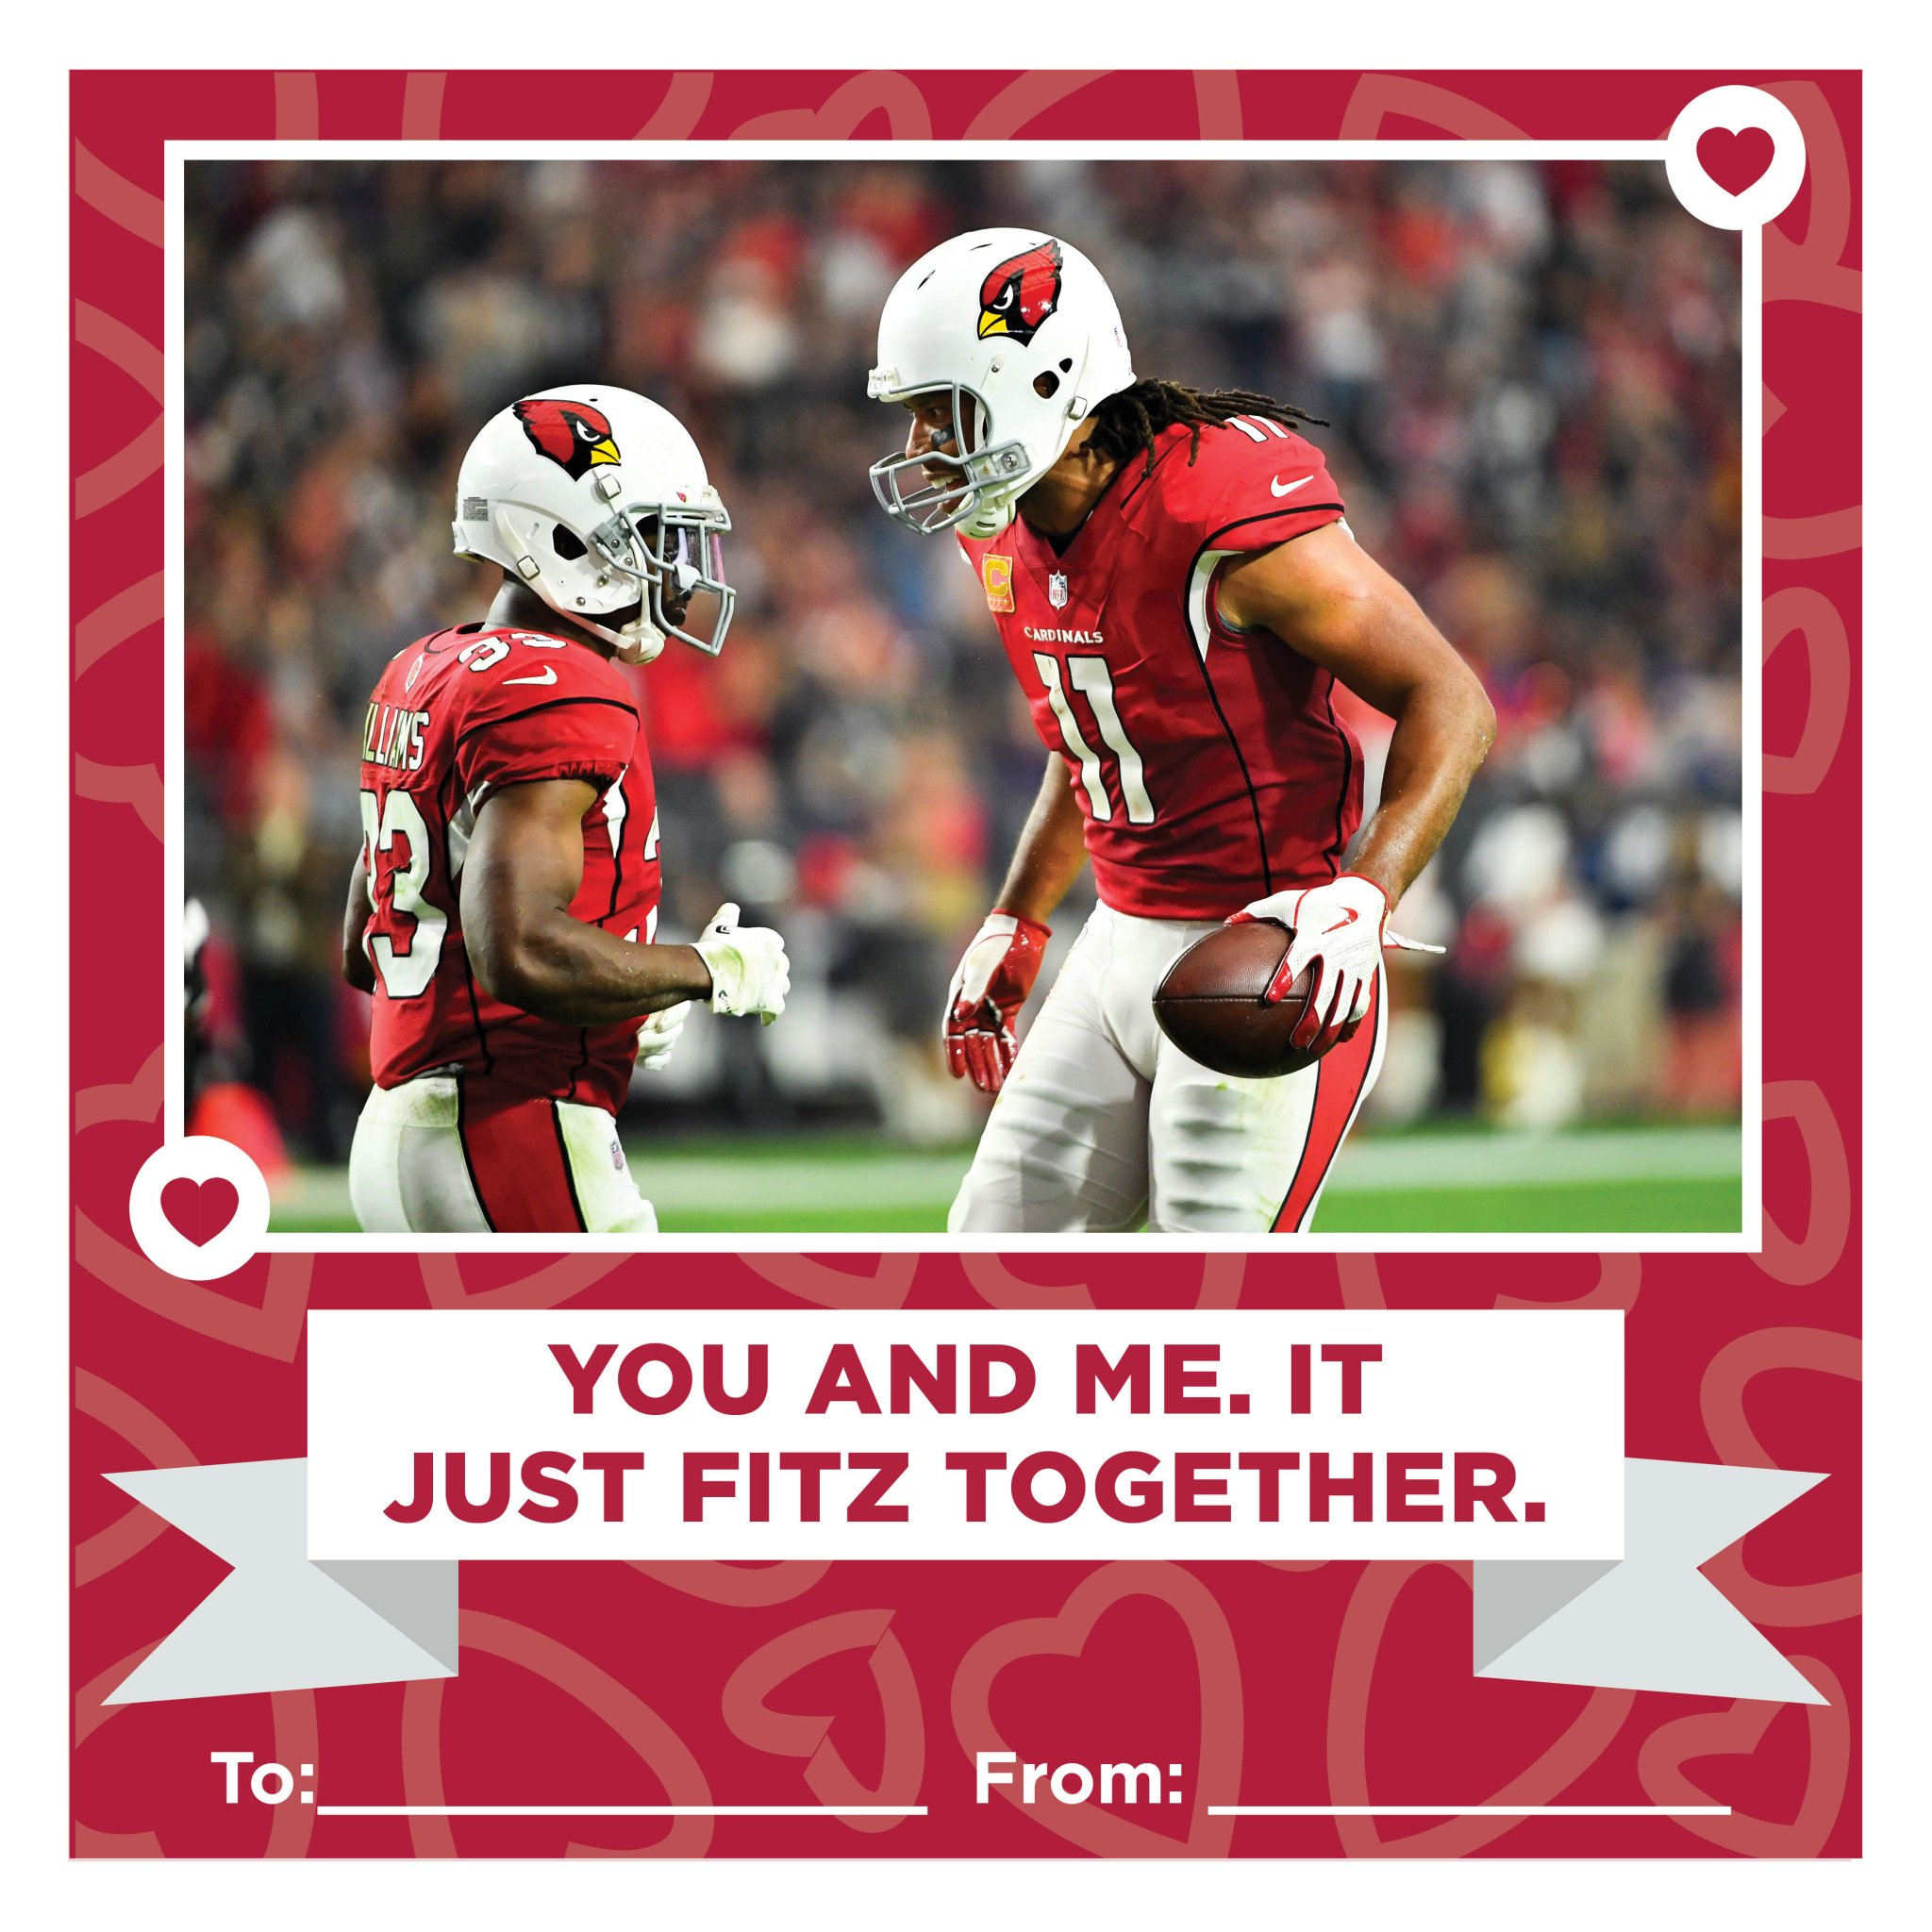 Make it a legendary Valentine's Day. Use one of our themed cards. https://t.co/ezbJyWrJzD